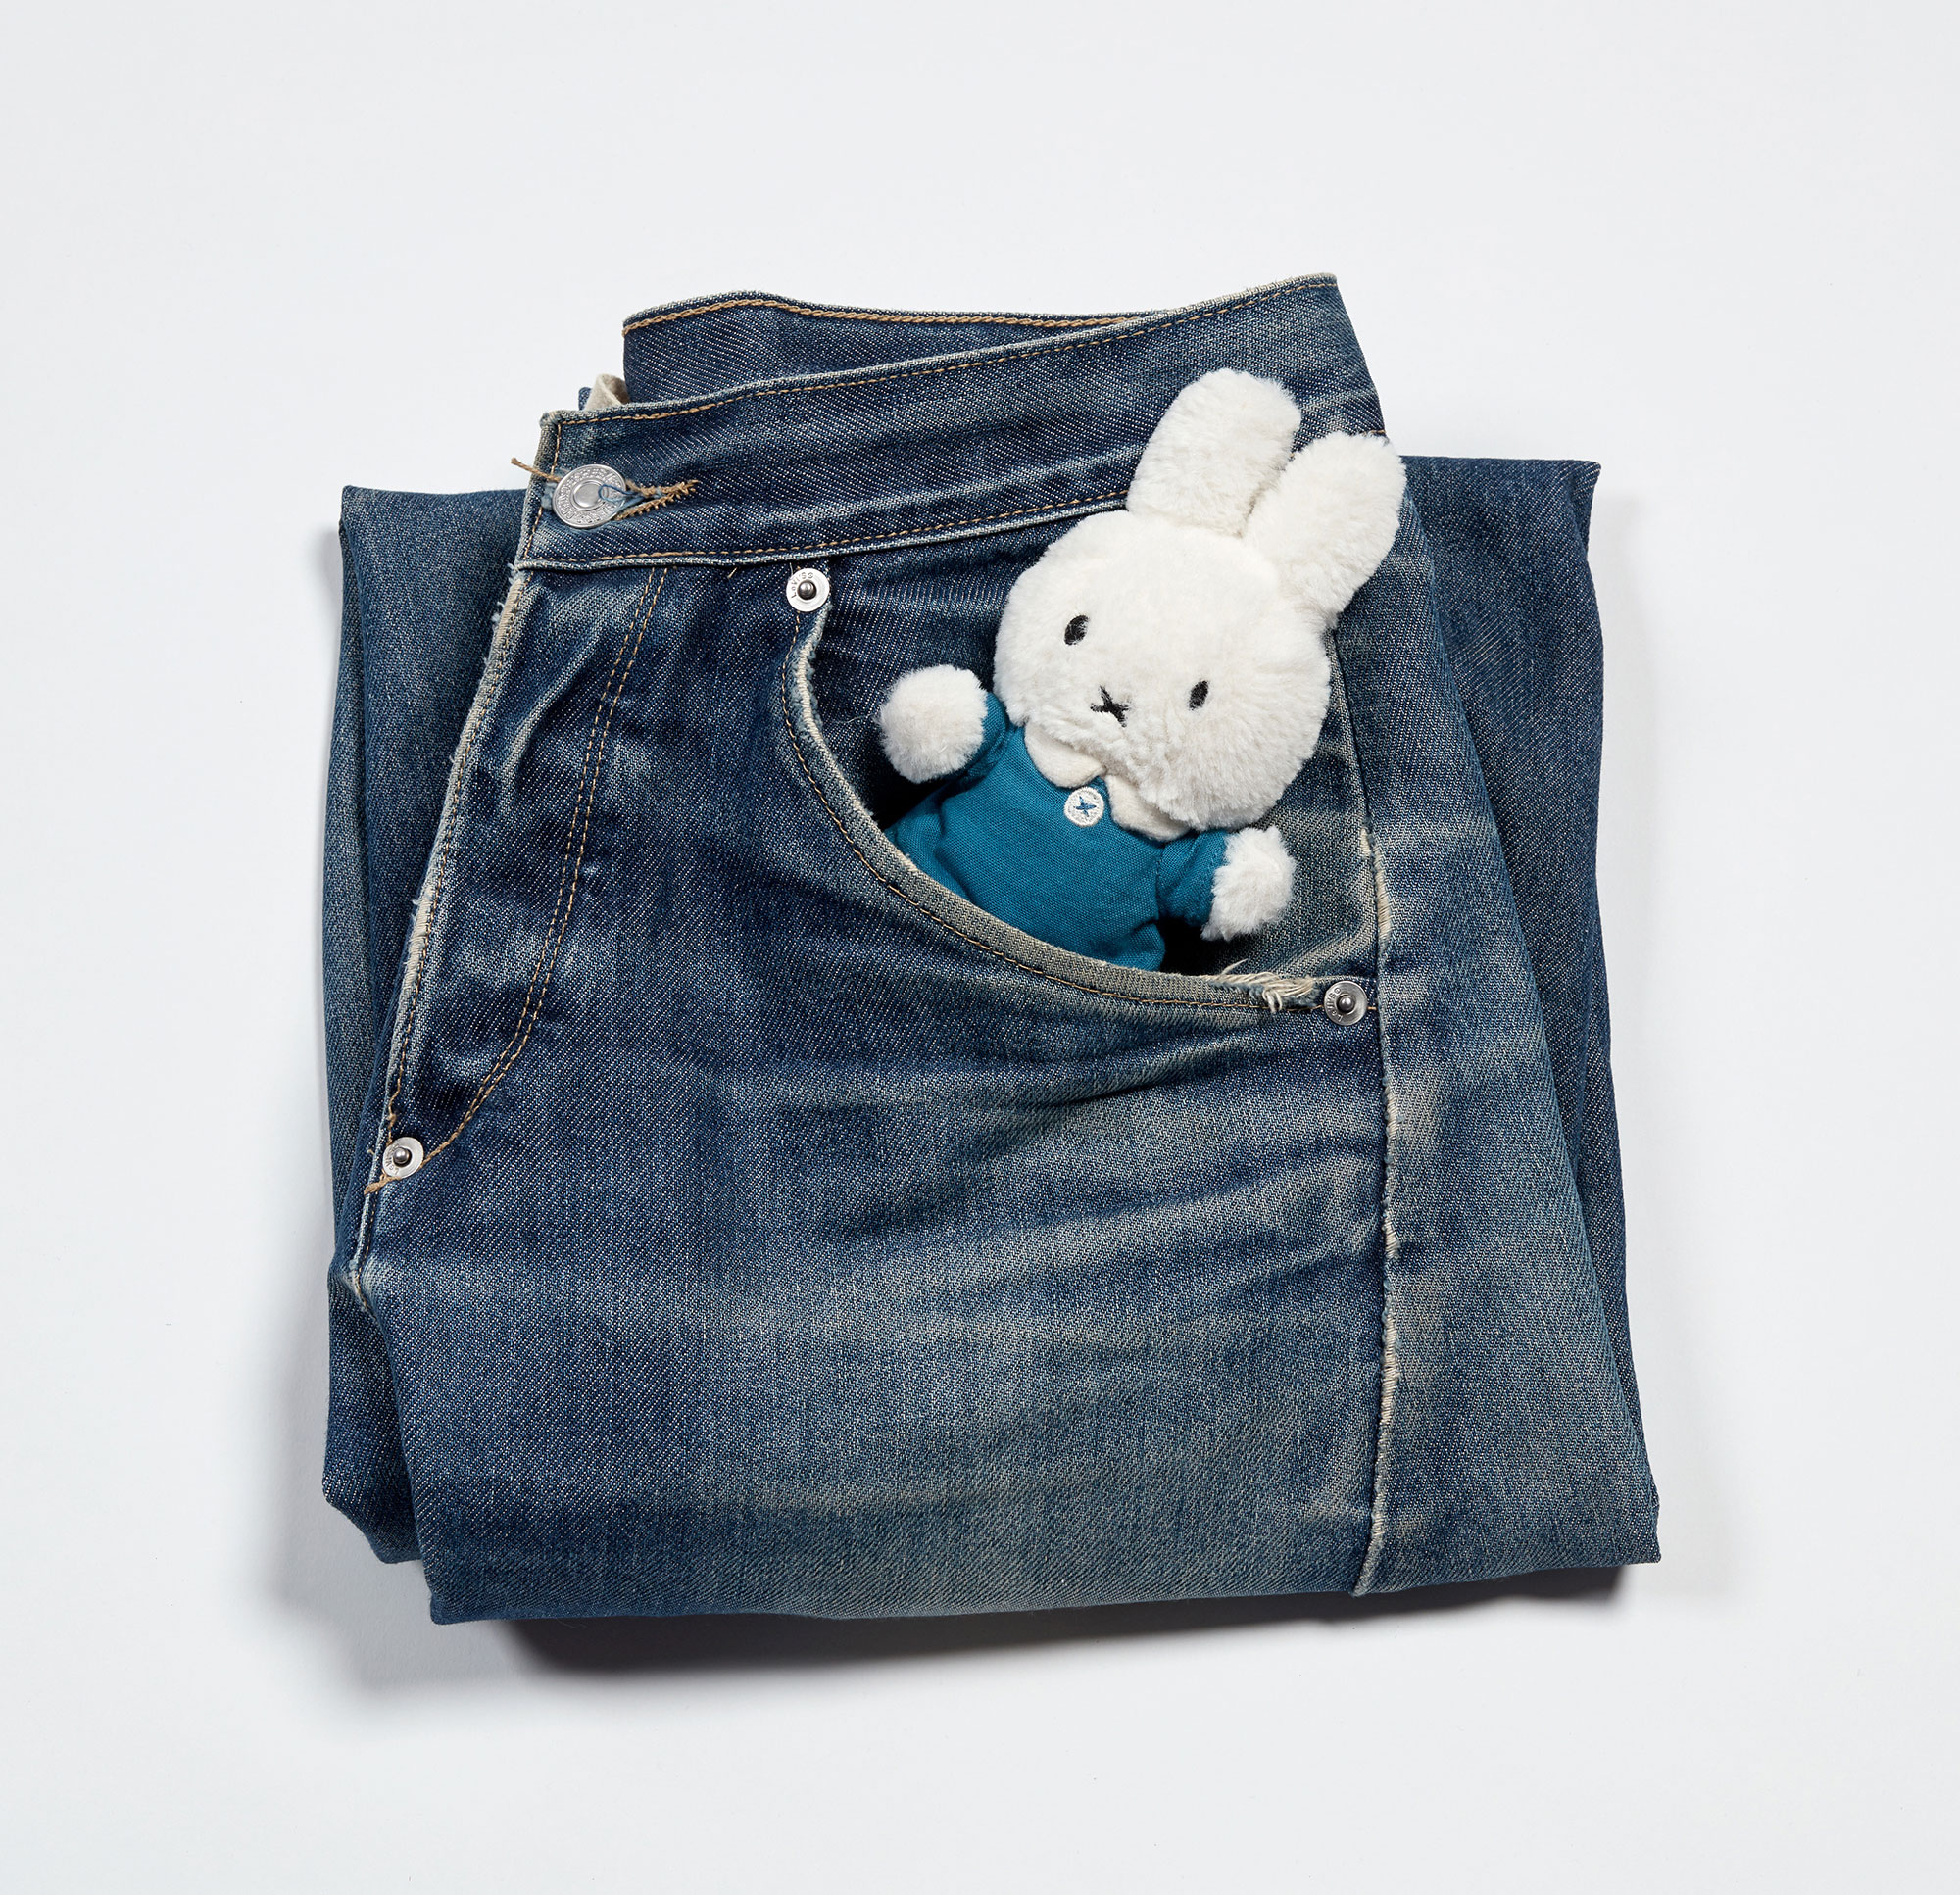 Miffy in jeans pocket